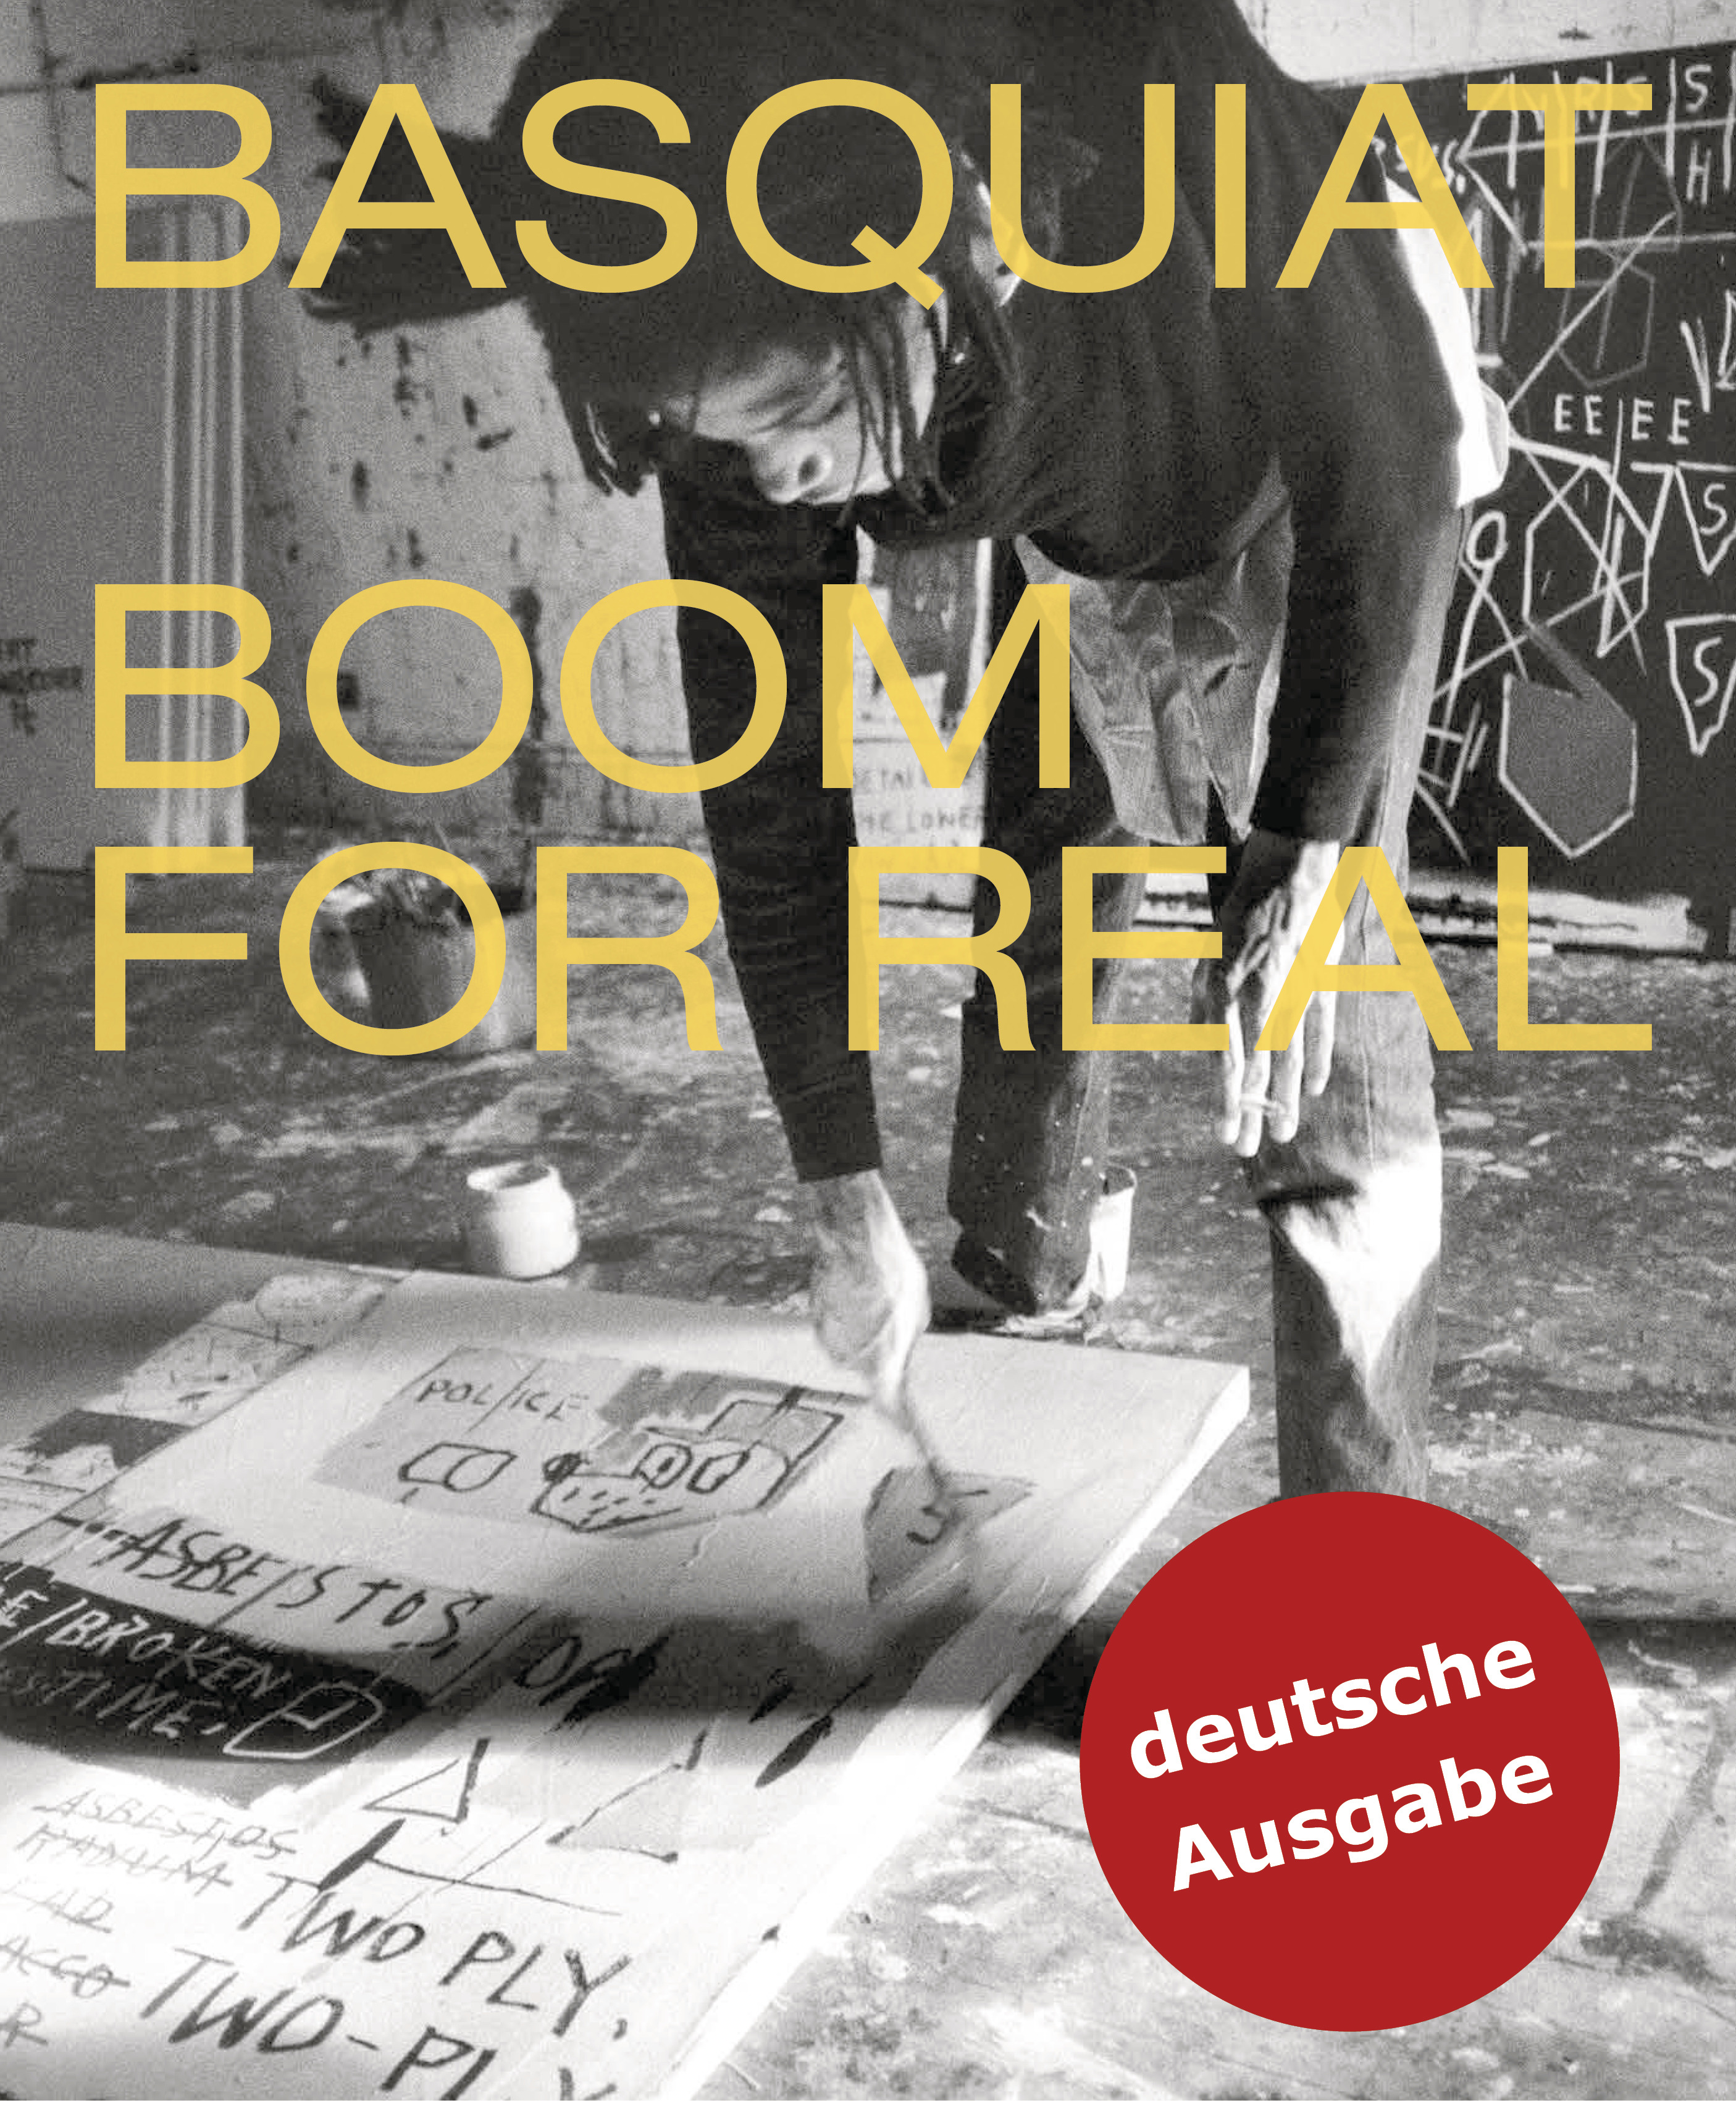 Basquiat Boom for Real (deutsch) Dieter Buchhart (Hrsg.), Eleanor Nairne (Hrsg.), Lotte Johnson (Hrsg.)